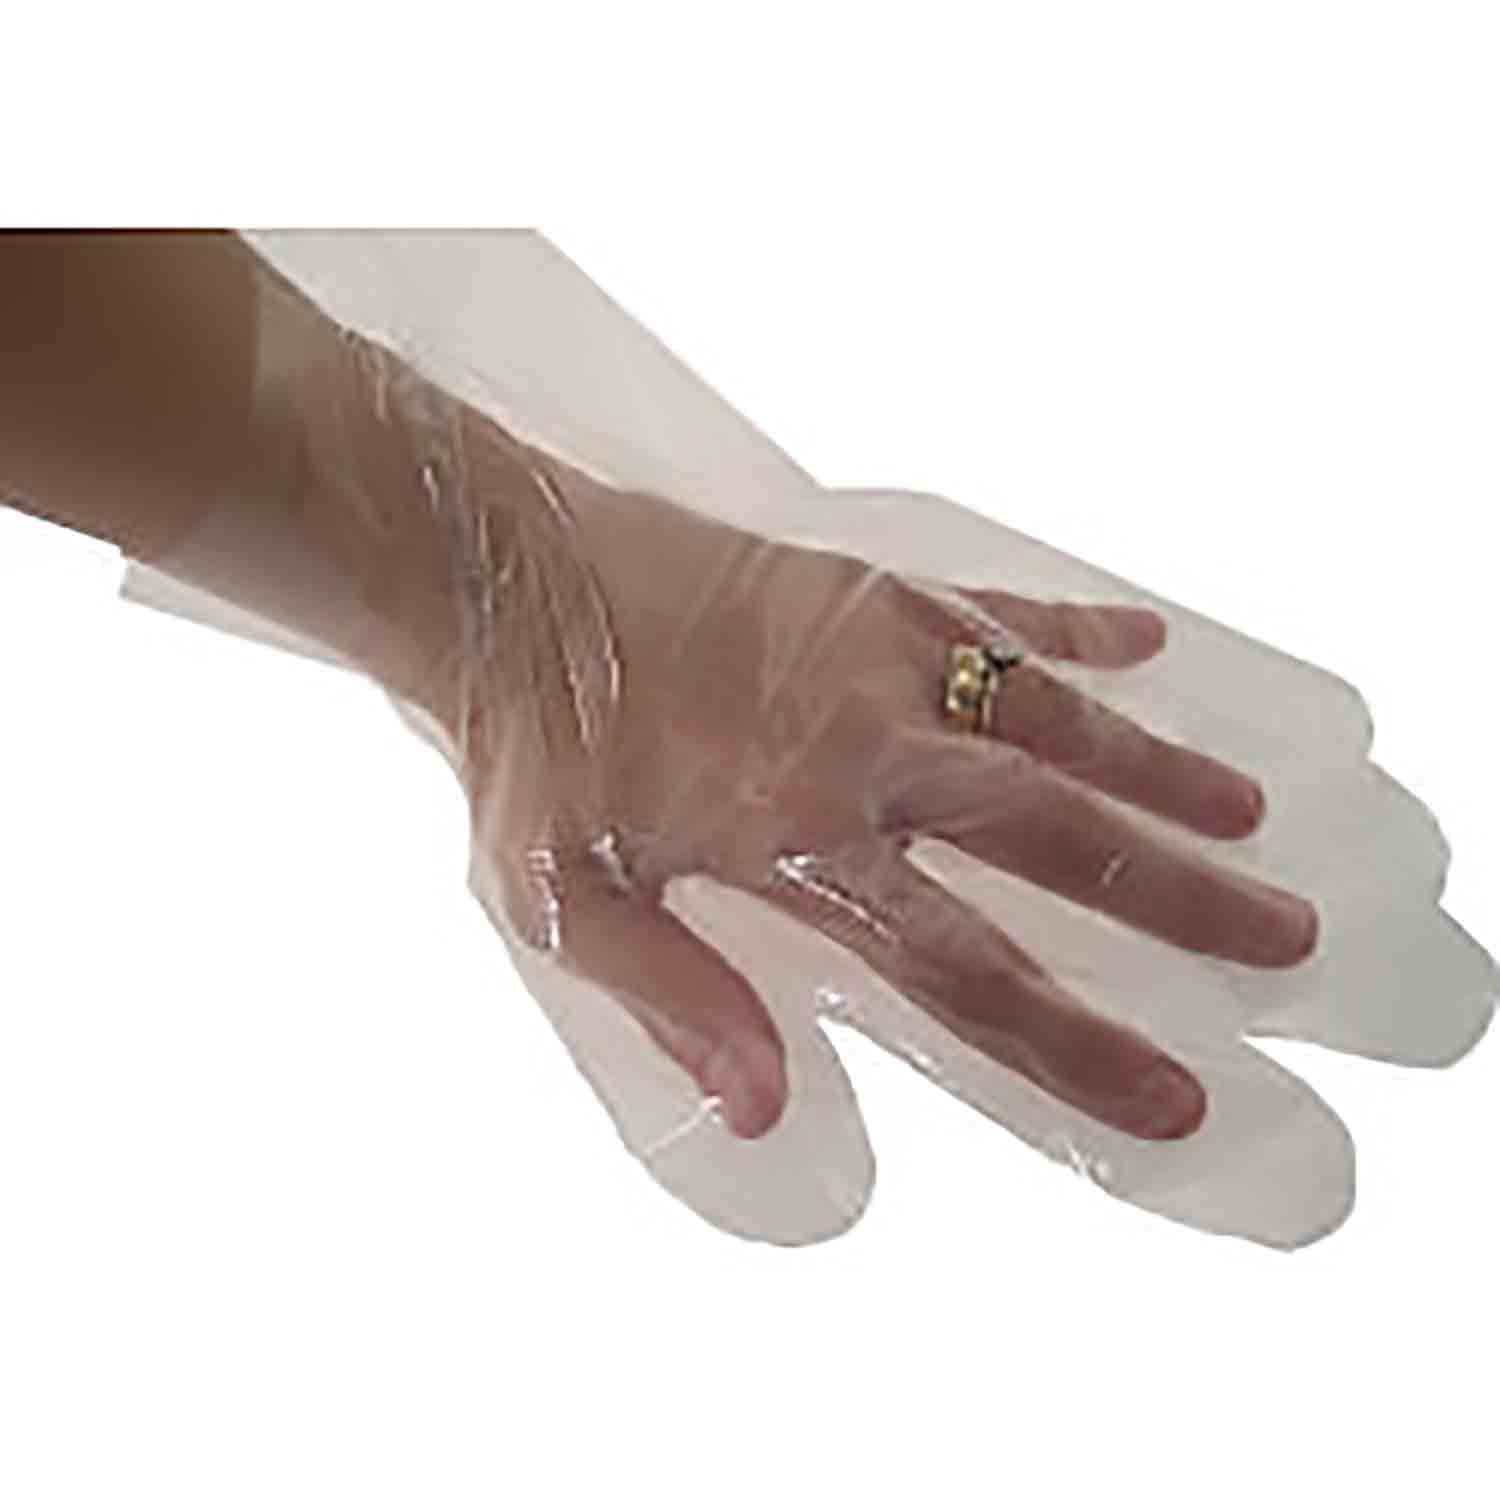 Bulk Plastic Gloves-Medium